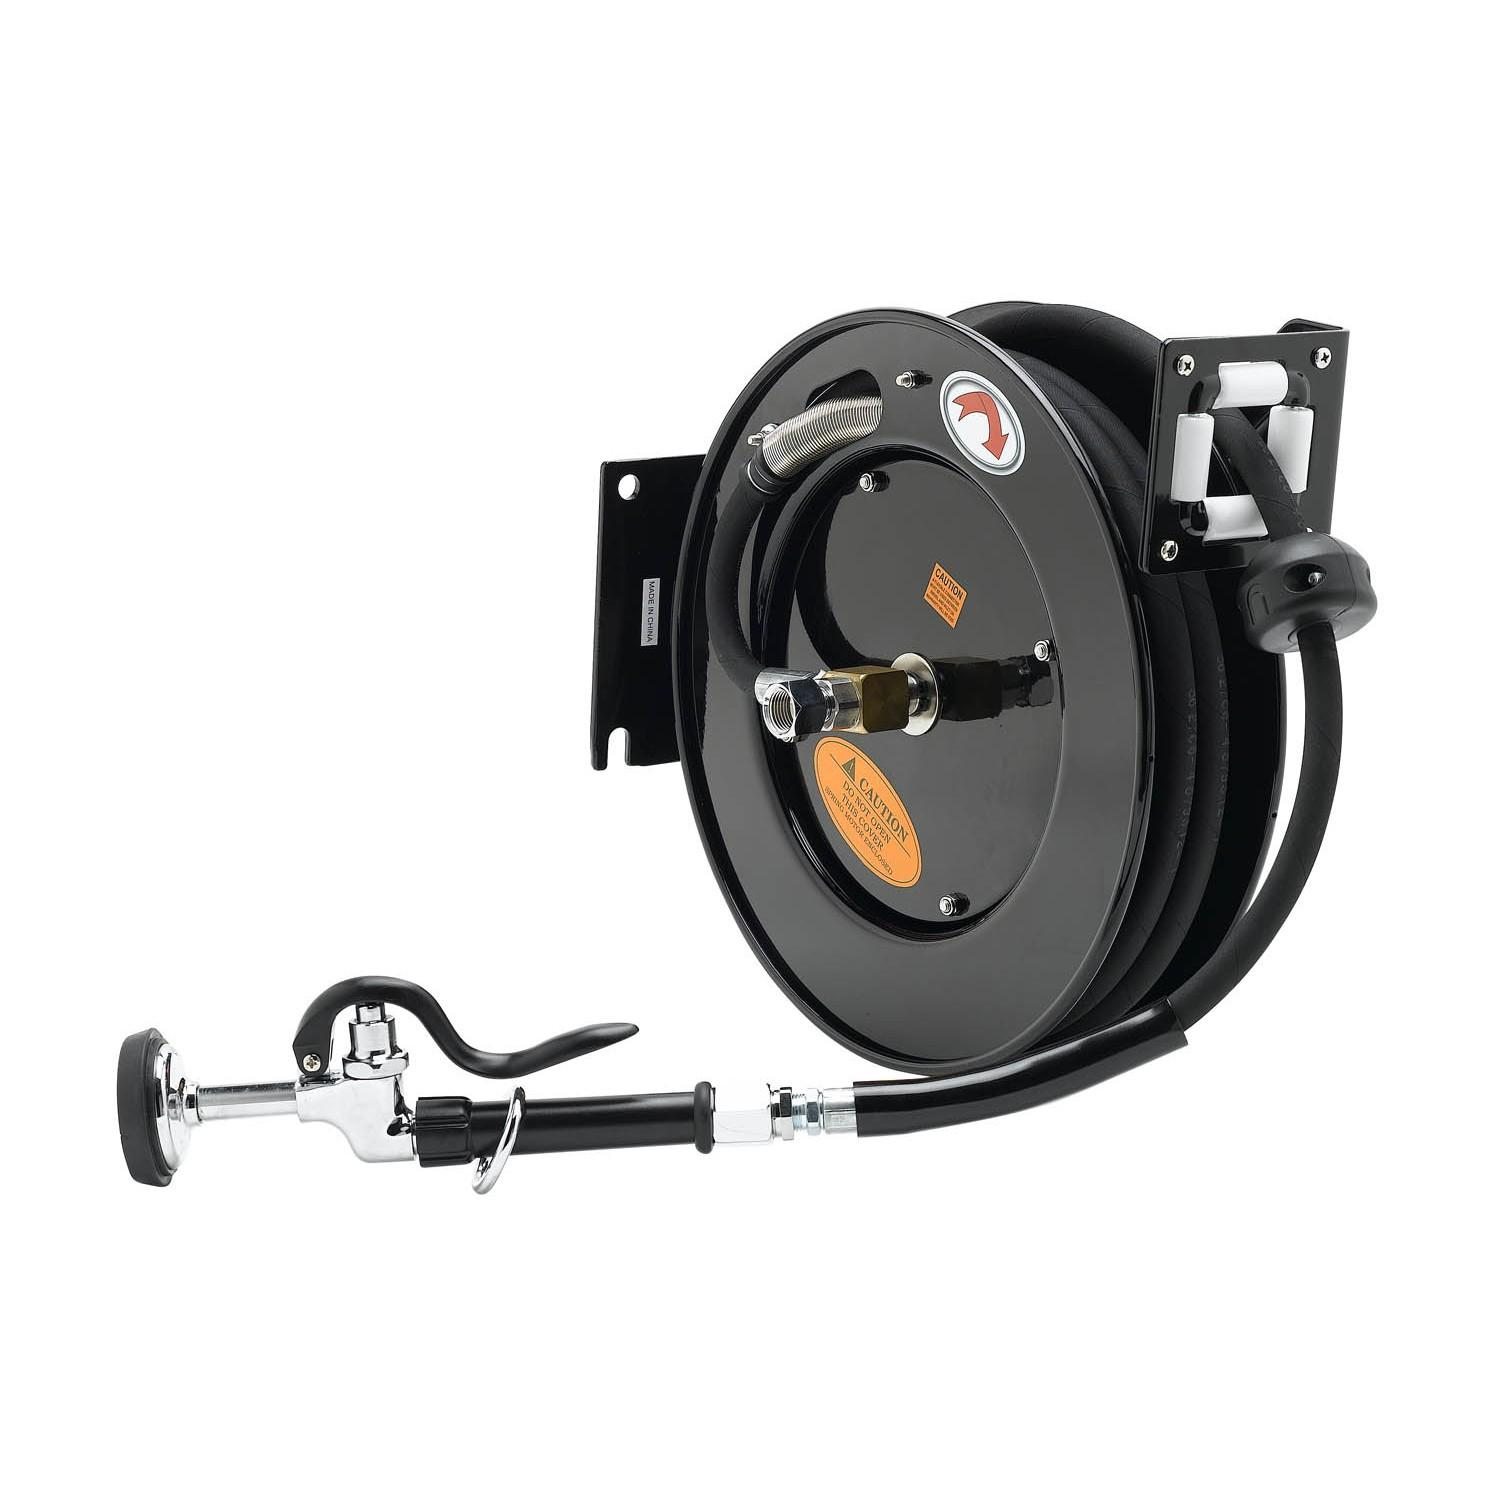 "T&S BRASS HOSE REEL, OPEN, POWDER COATED STEEL, 35^ X 3/8"" ID HOSE W/ SPRAY VALVE & REDUCING ADAPTER"